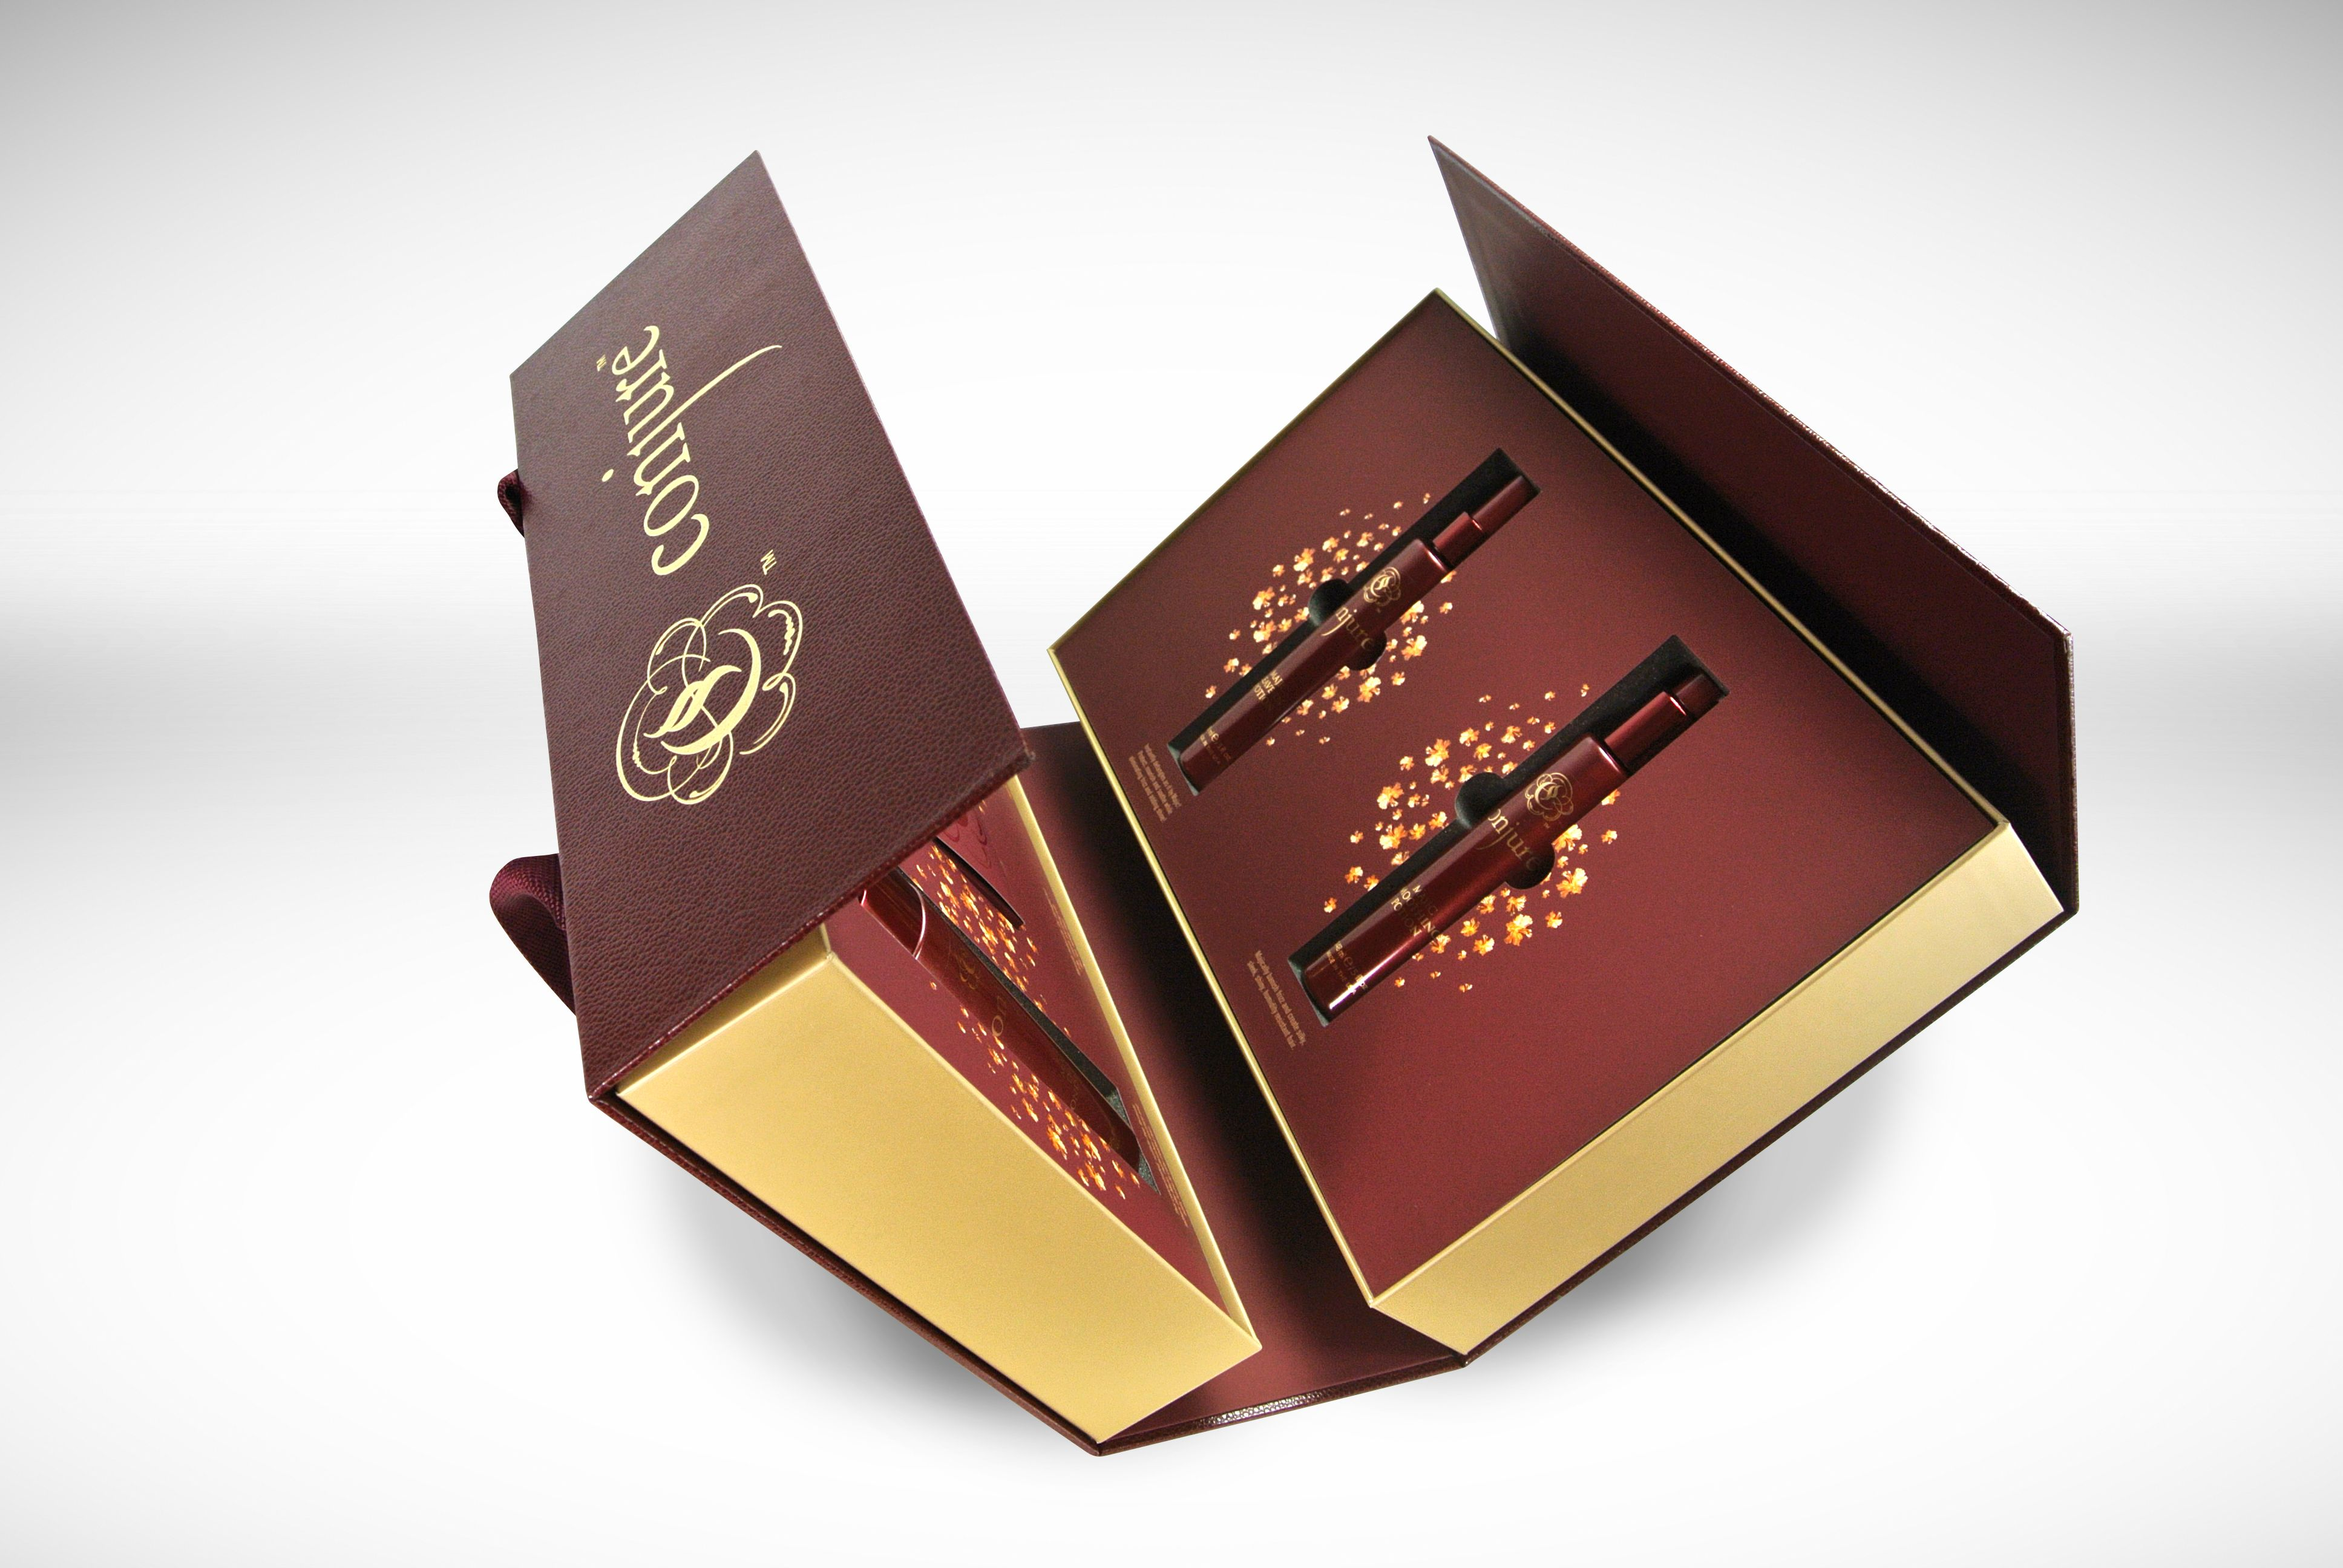 The Conjure Sales Kit Is One Of A Kind Burgundy Material And Gold Foil Demand Attention Inside Custom Foam Inserts And Matte Lami Sales Kit The Conjuring Box